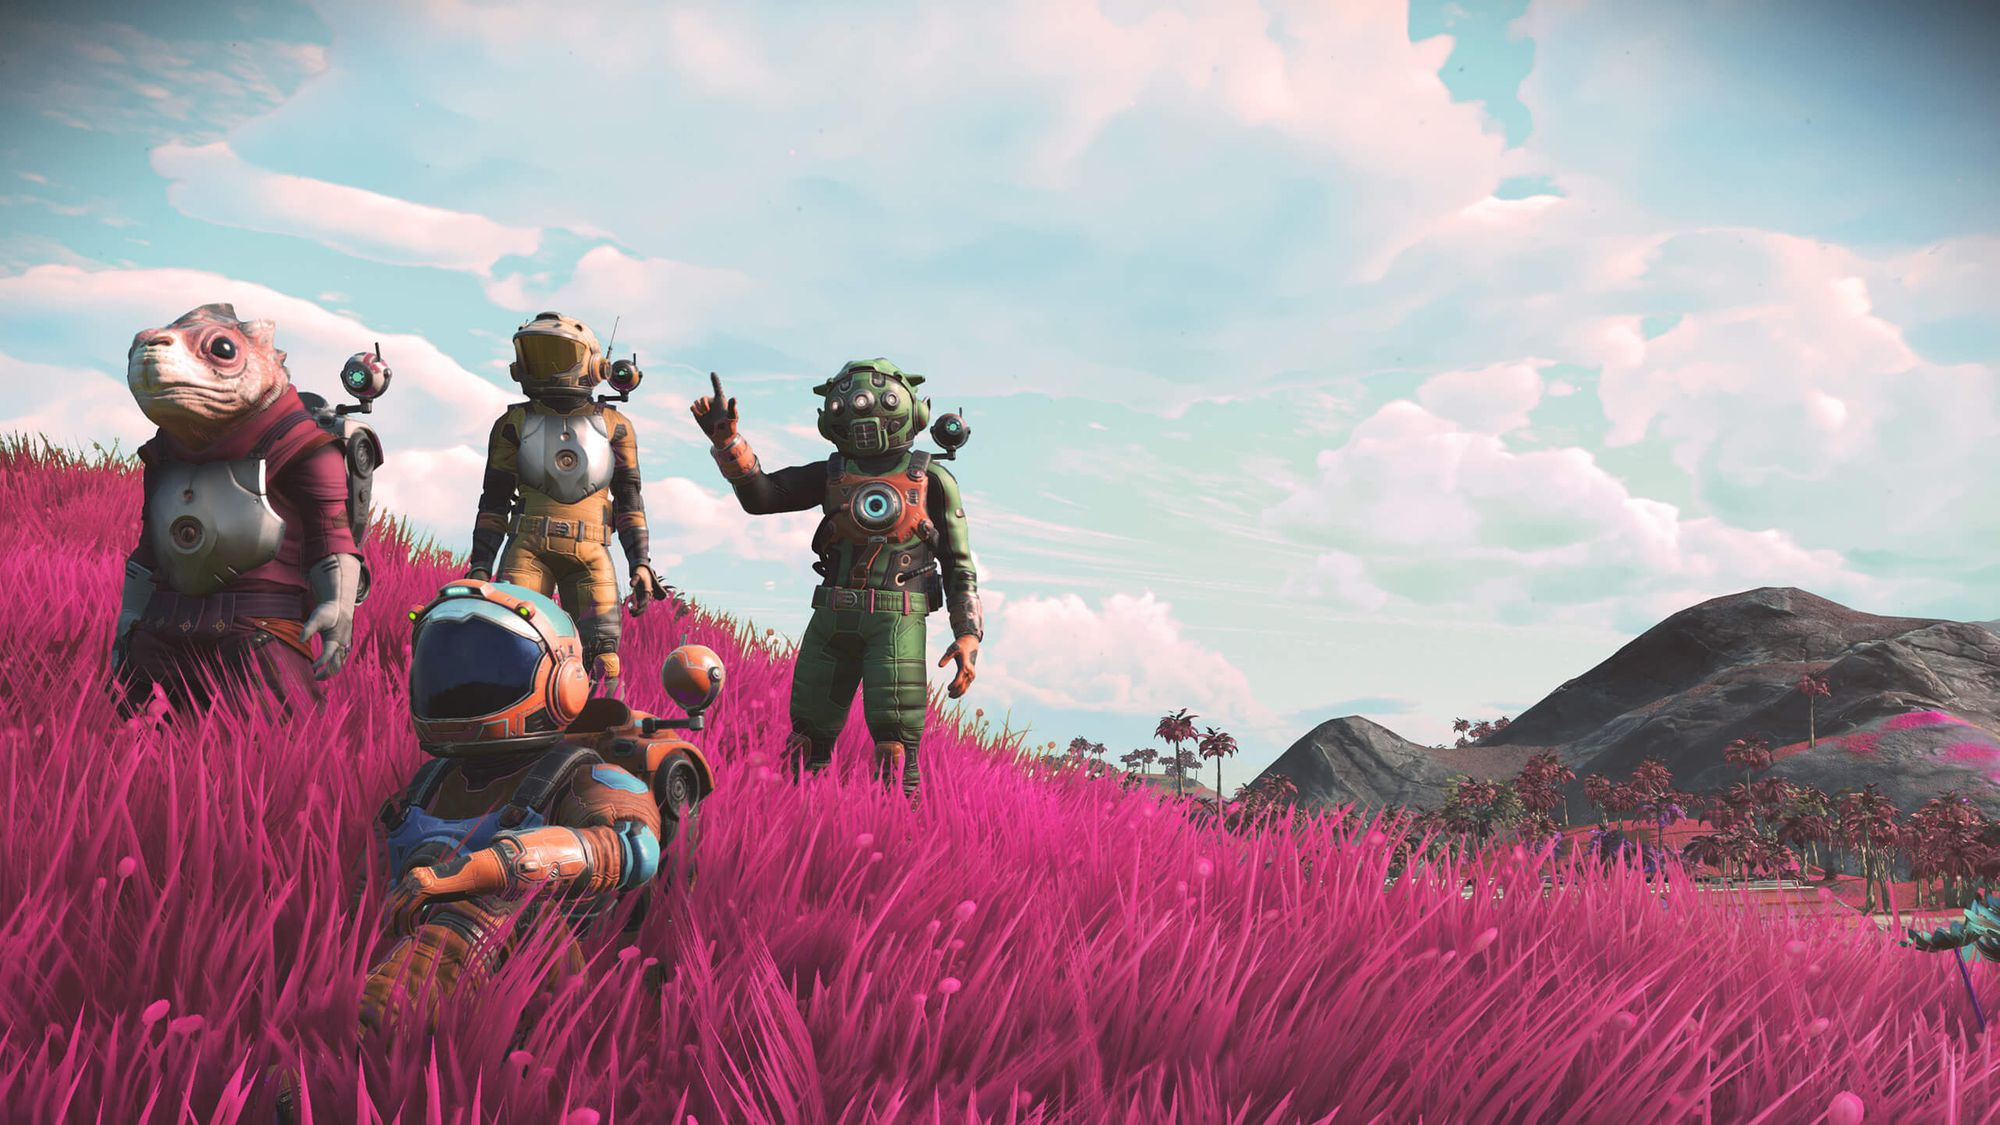 No Man's Sky continues its debacle on GOG